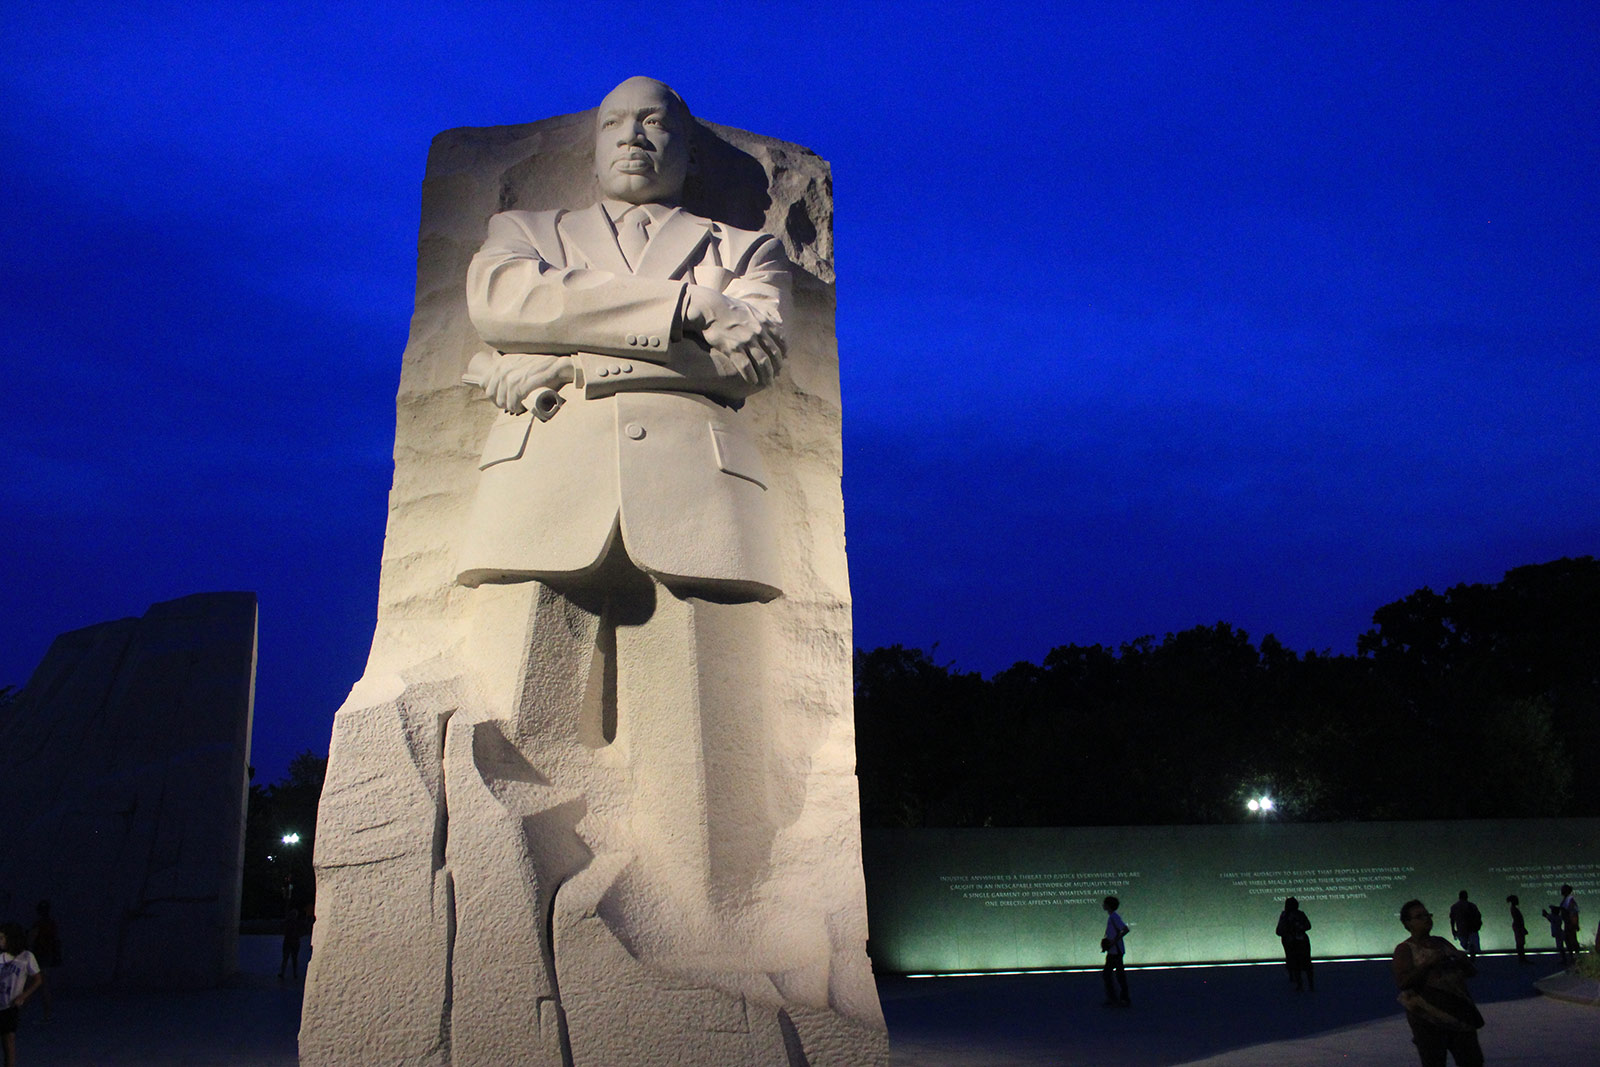 Martin Luther King Jr National Memorial, Washington, D.C.